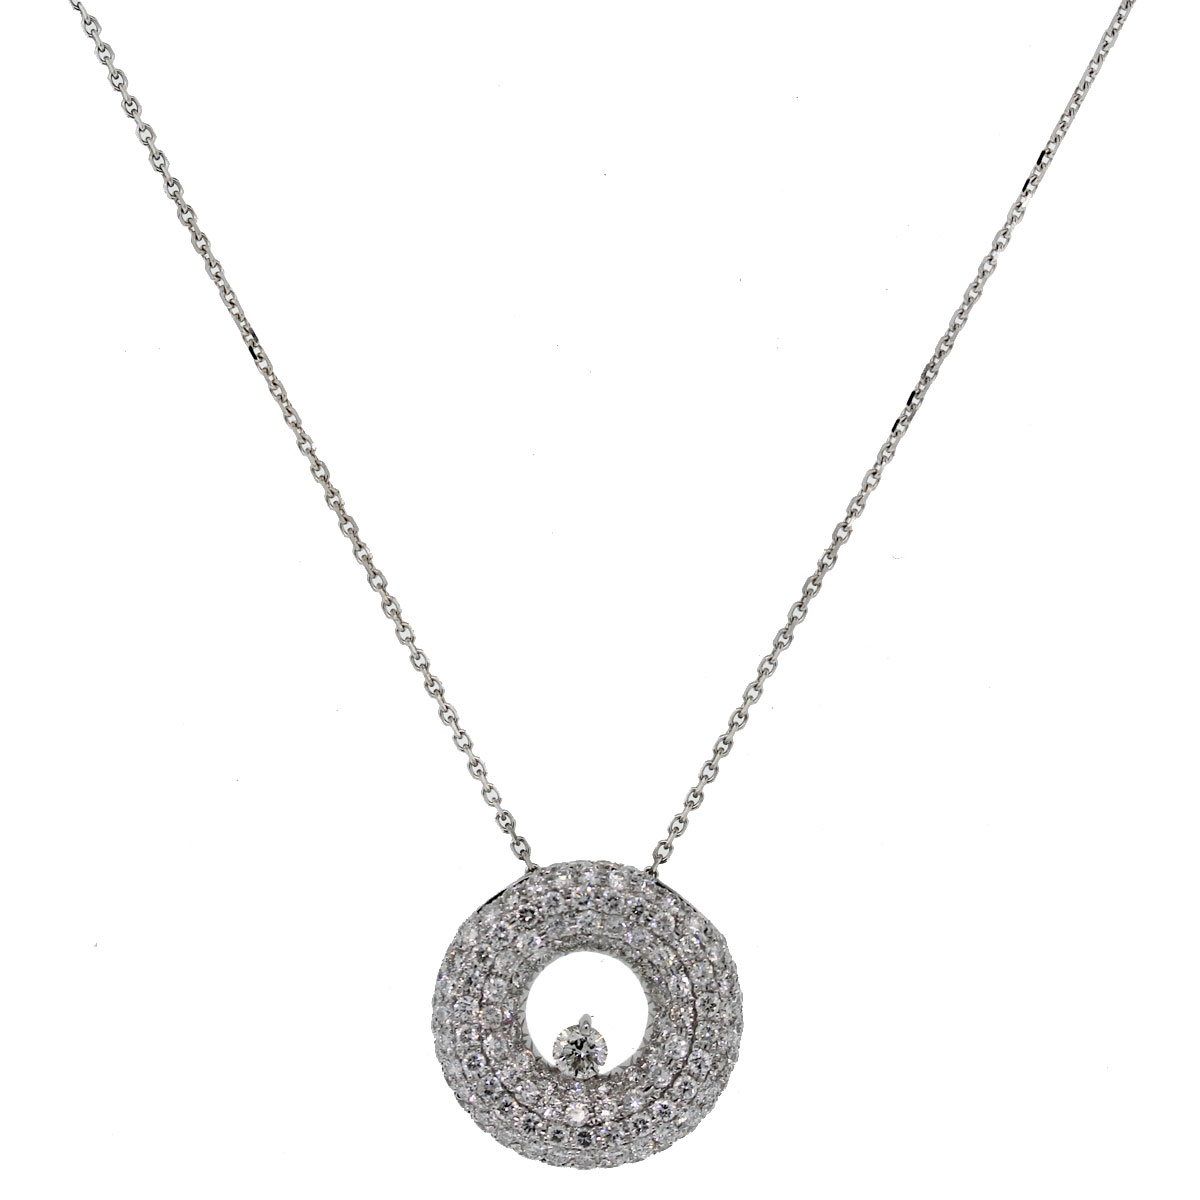 We love this 18kt White Gold Pave Set Diamond Disc Pendant on 14kt White Gold Chain!